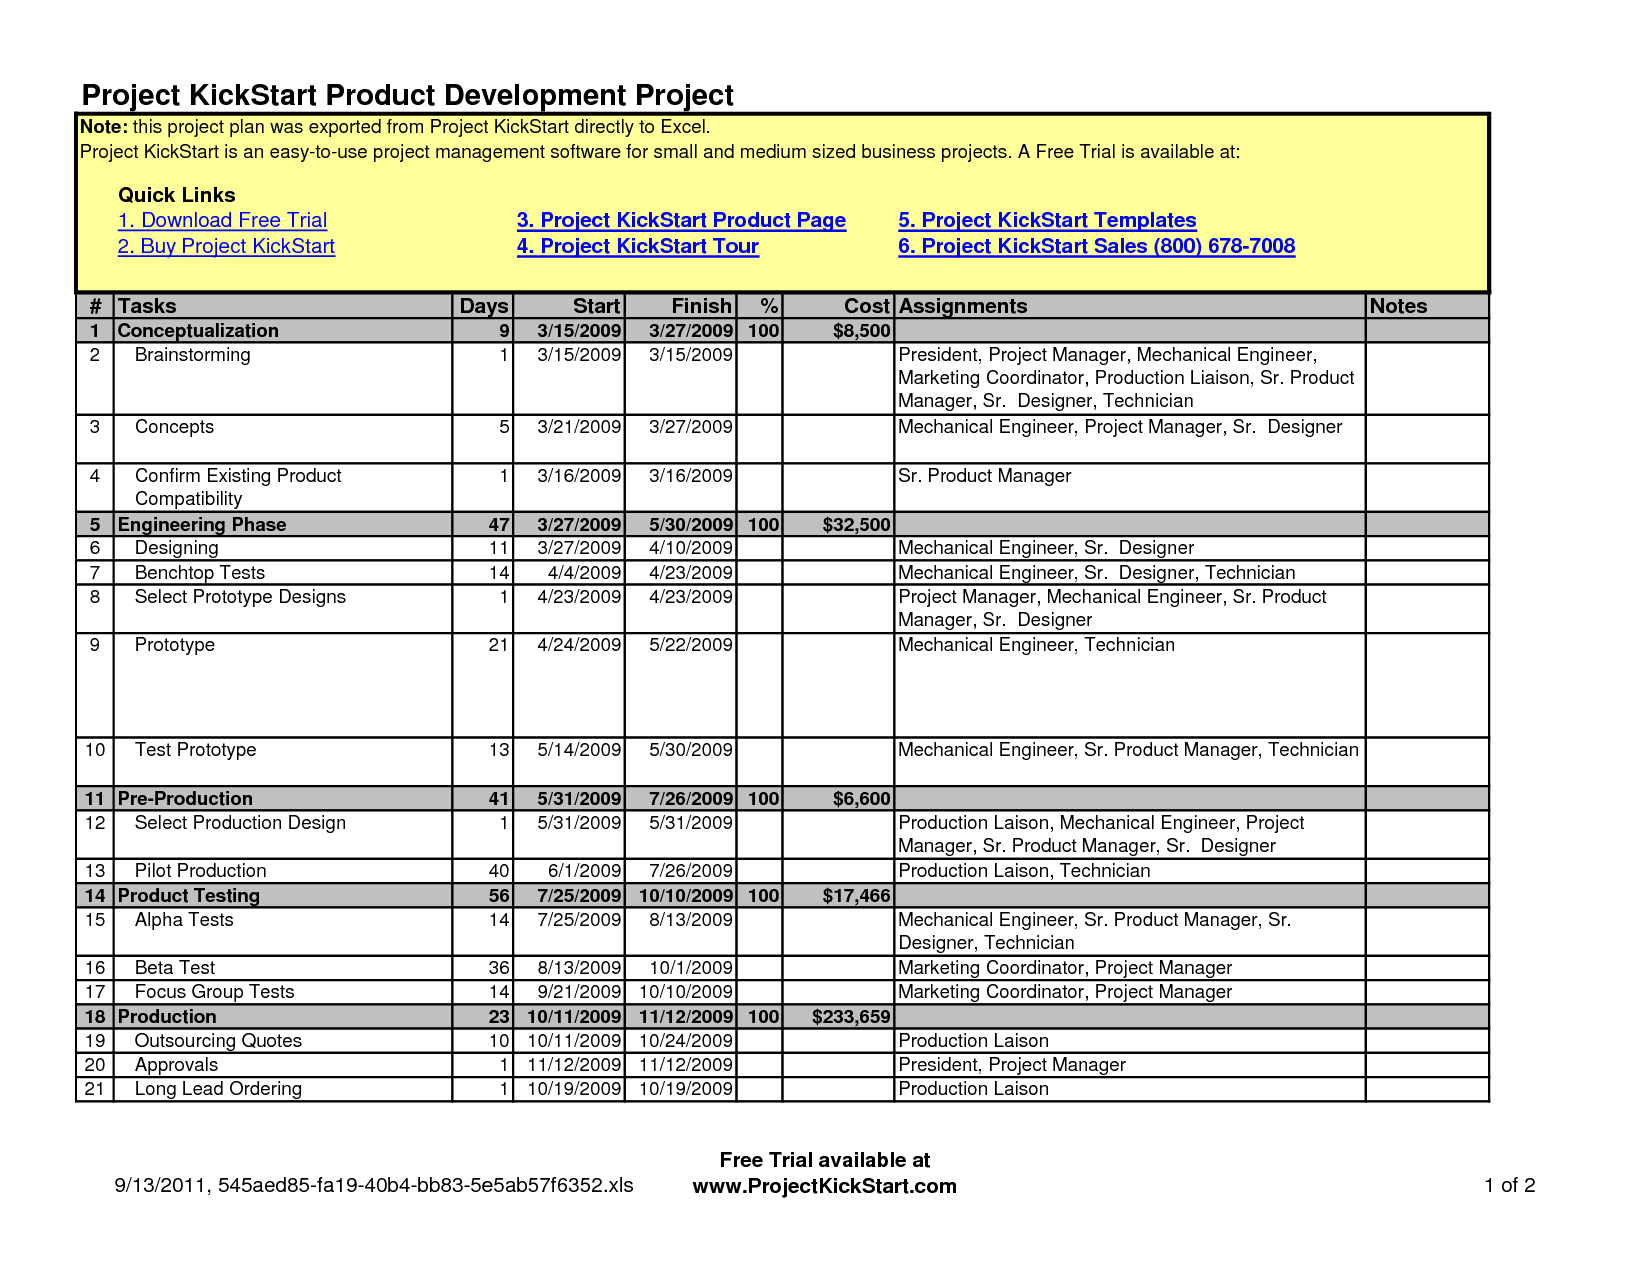 Project Management Schedule Template Project Management Spreadsheet Template Spreadsheet Templates for Business Management Spreadsheet Project Management Spreadshee Spreadsheet Templates for Business Management Spreadsheet Project Management Spreadshee Tools For Project Management